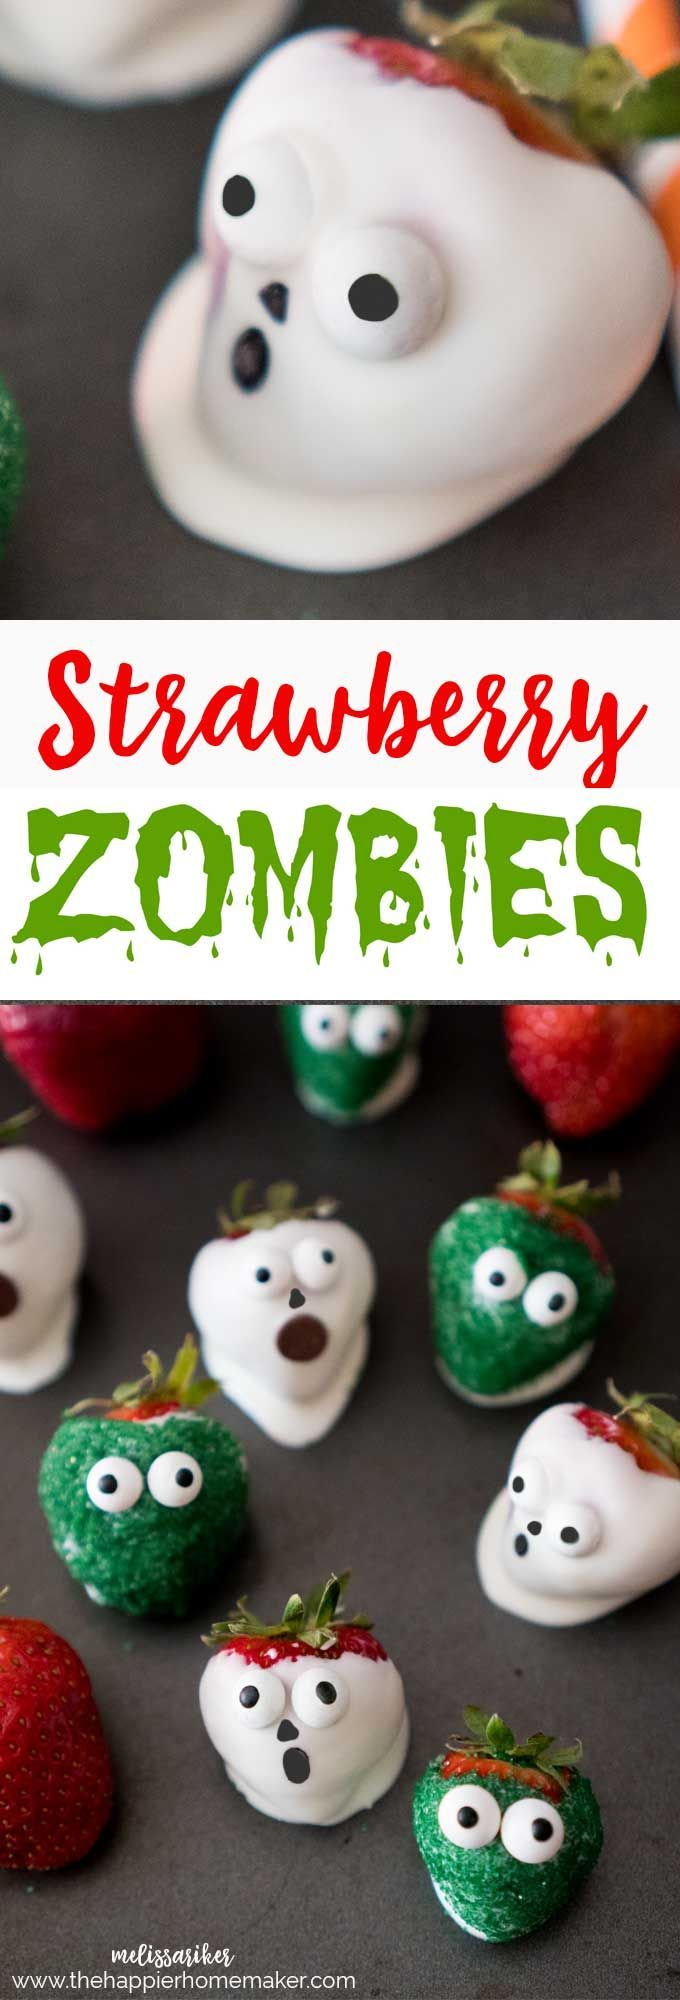 Chocolate covered strawberry zombies are an easy and cute kid's party treat!